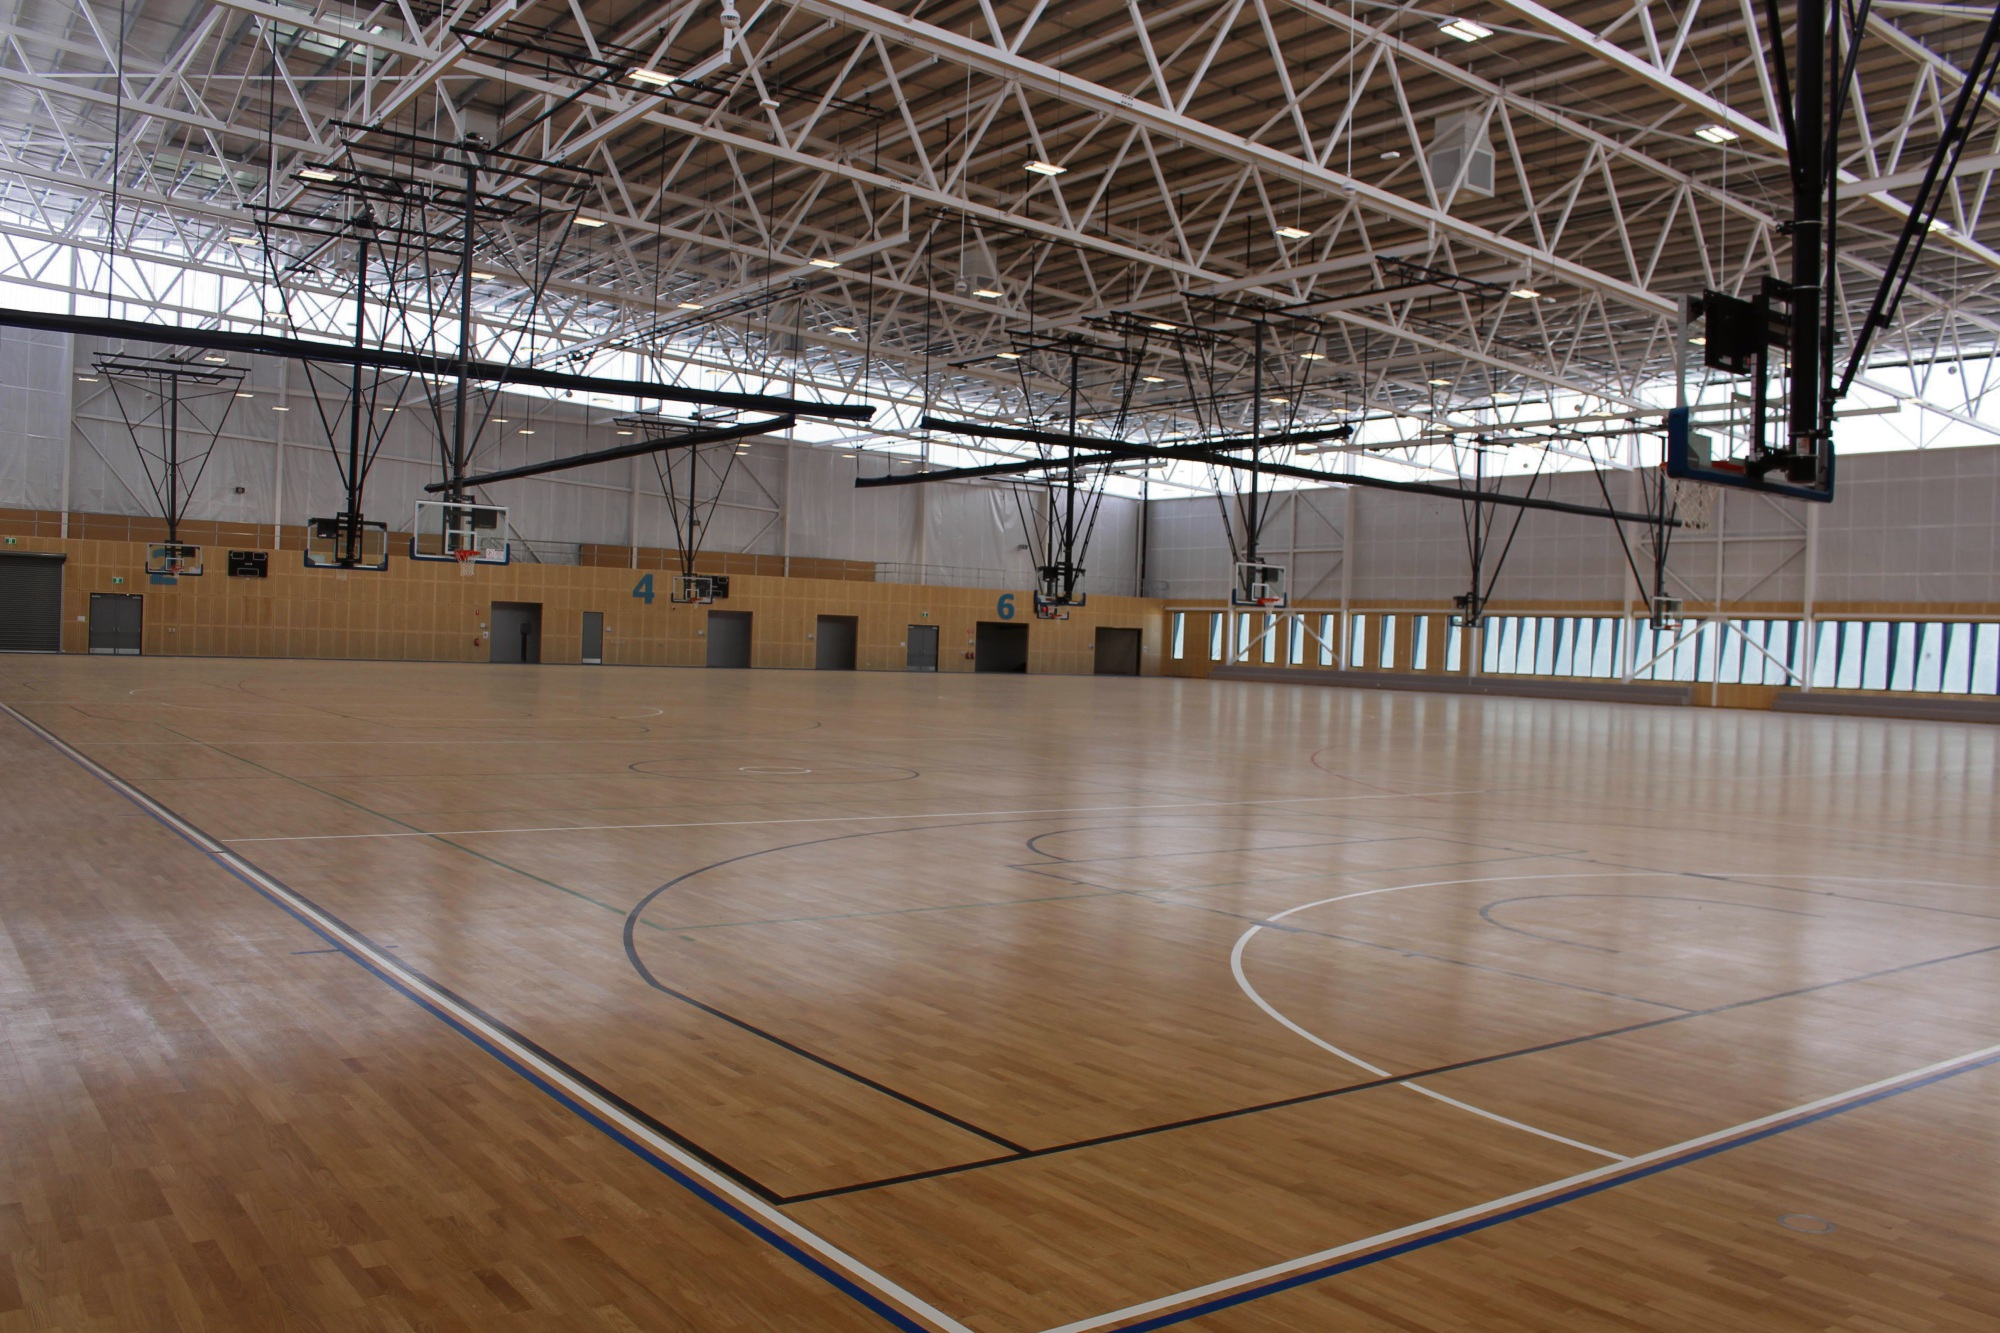 The multifunctional indoor training stadium with six basketball courts and a 100m running track.